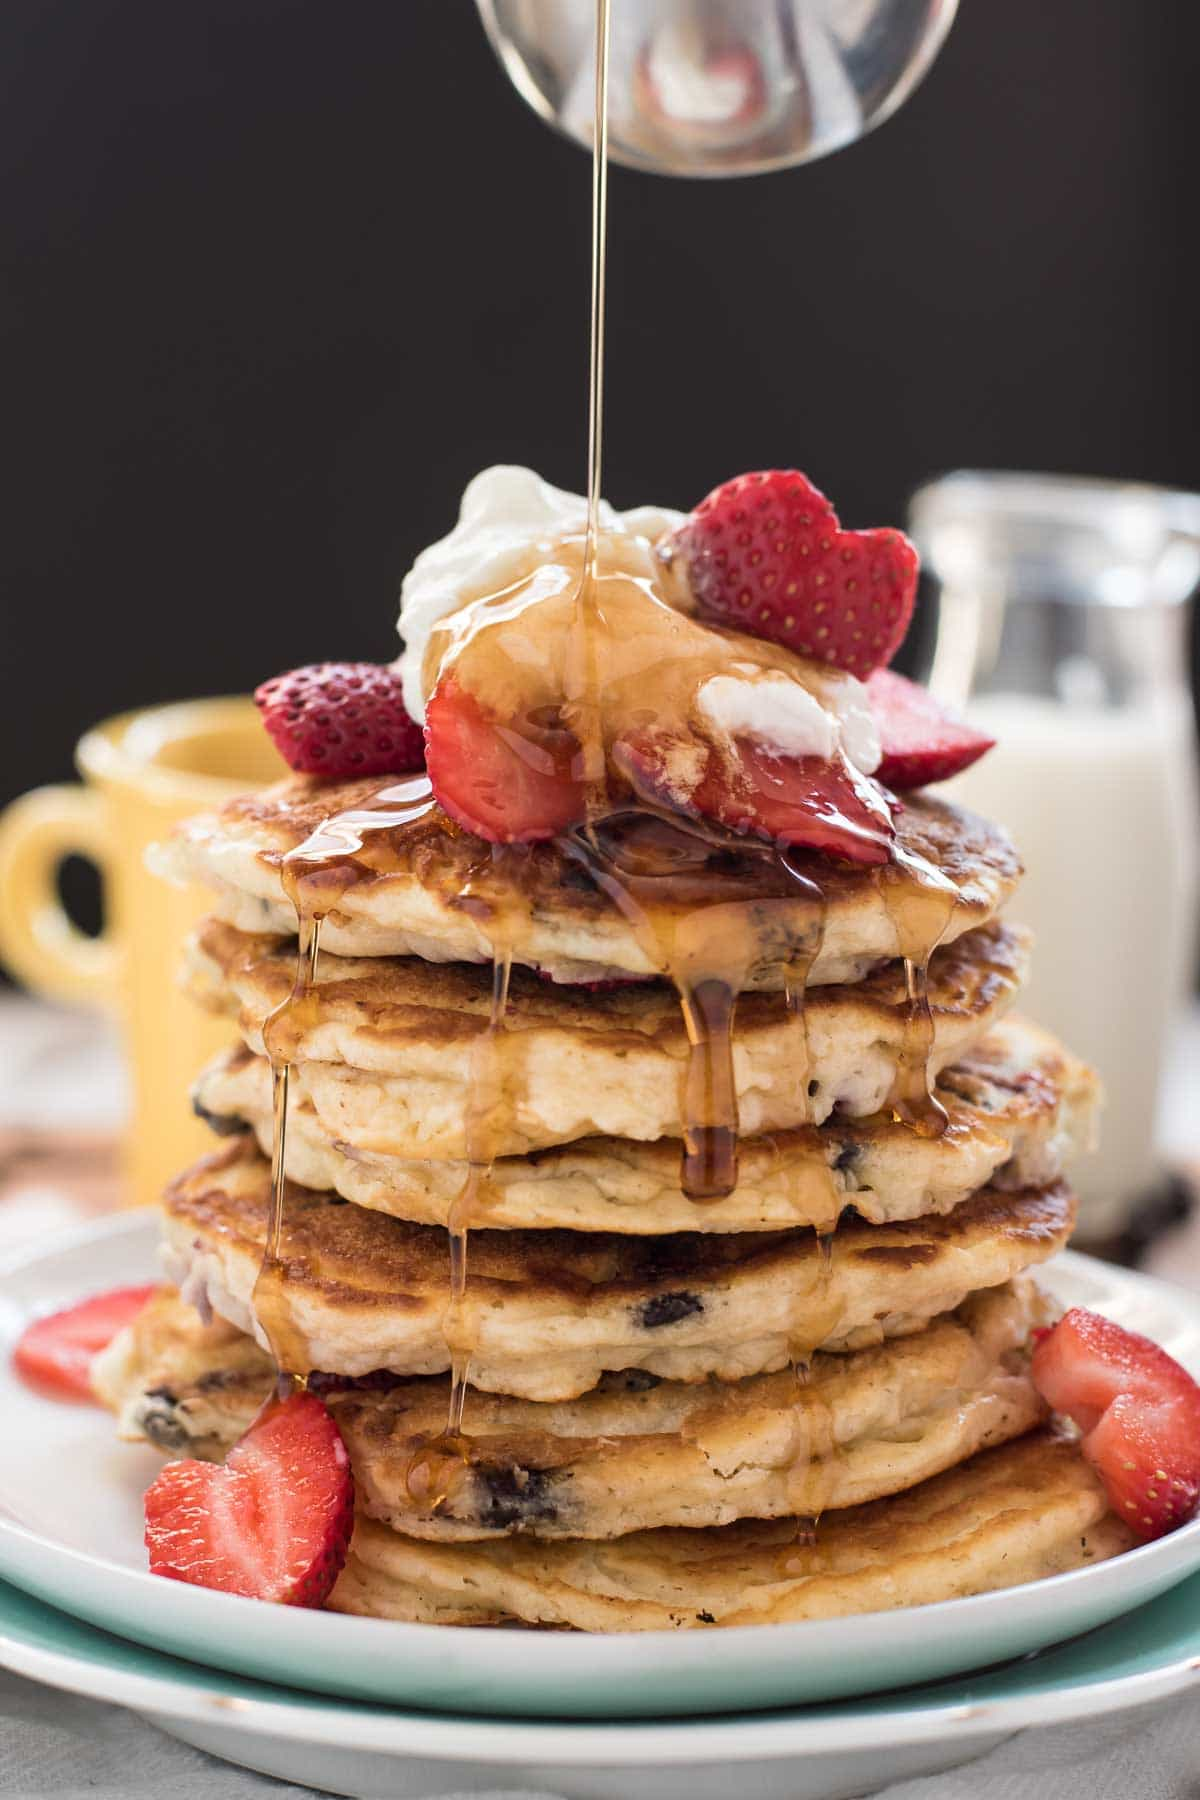 This stack of Strawberry Chocolate Chip Pancakes is the perfect breakfast for Valentine's Day.